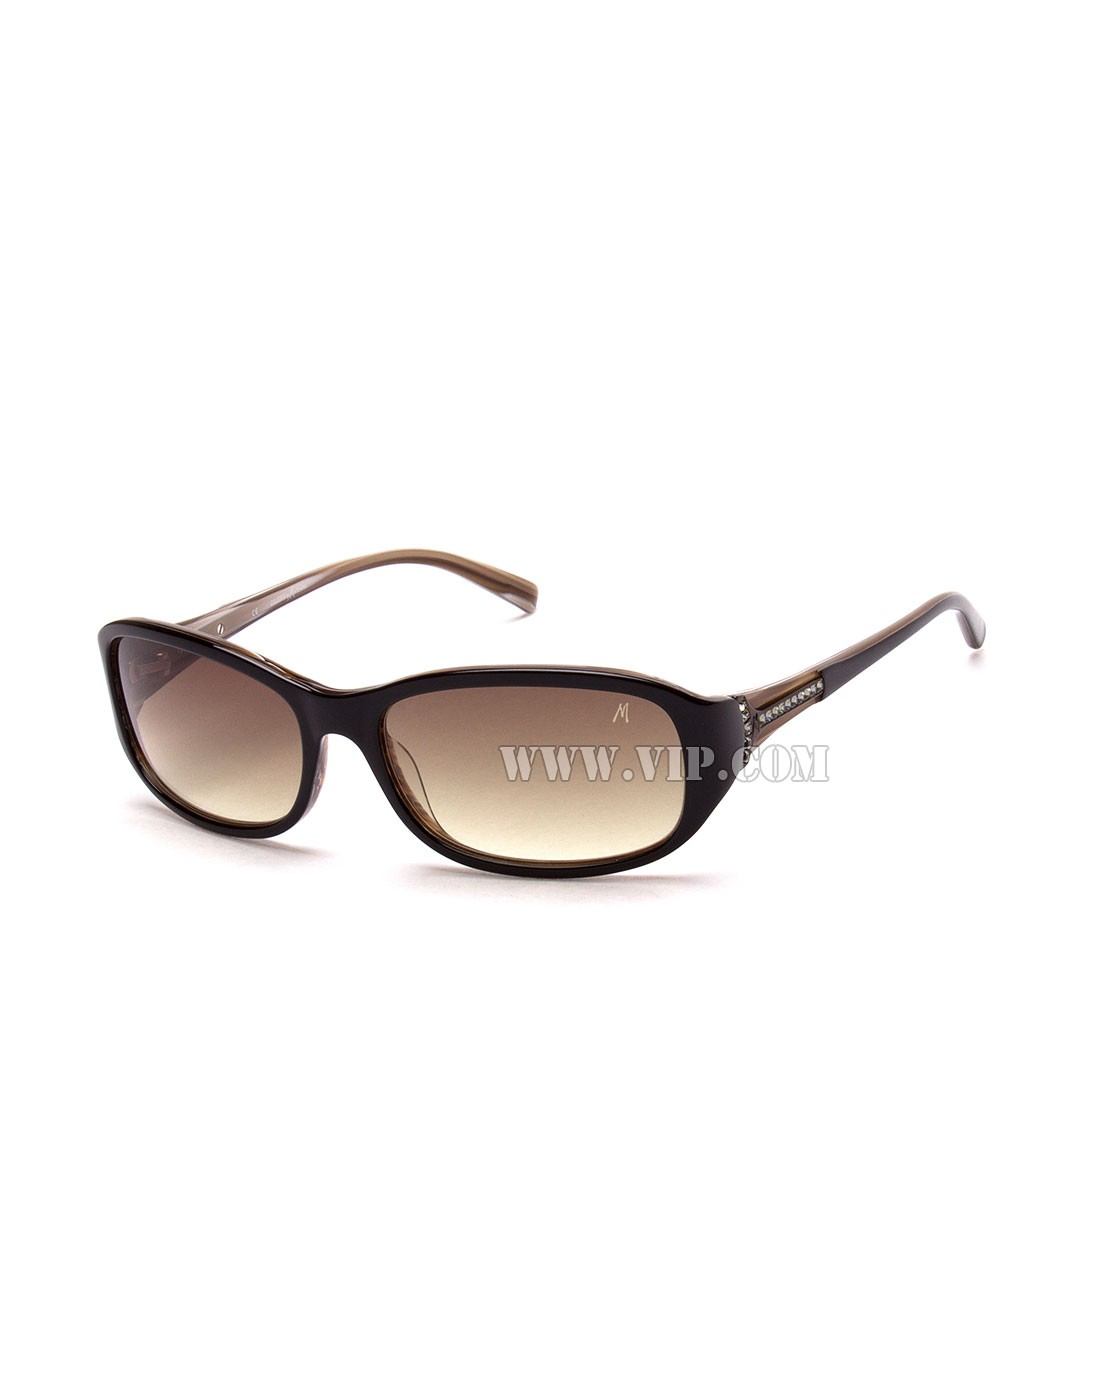 guess by marciano eyeglass frames  guess&guess